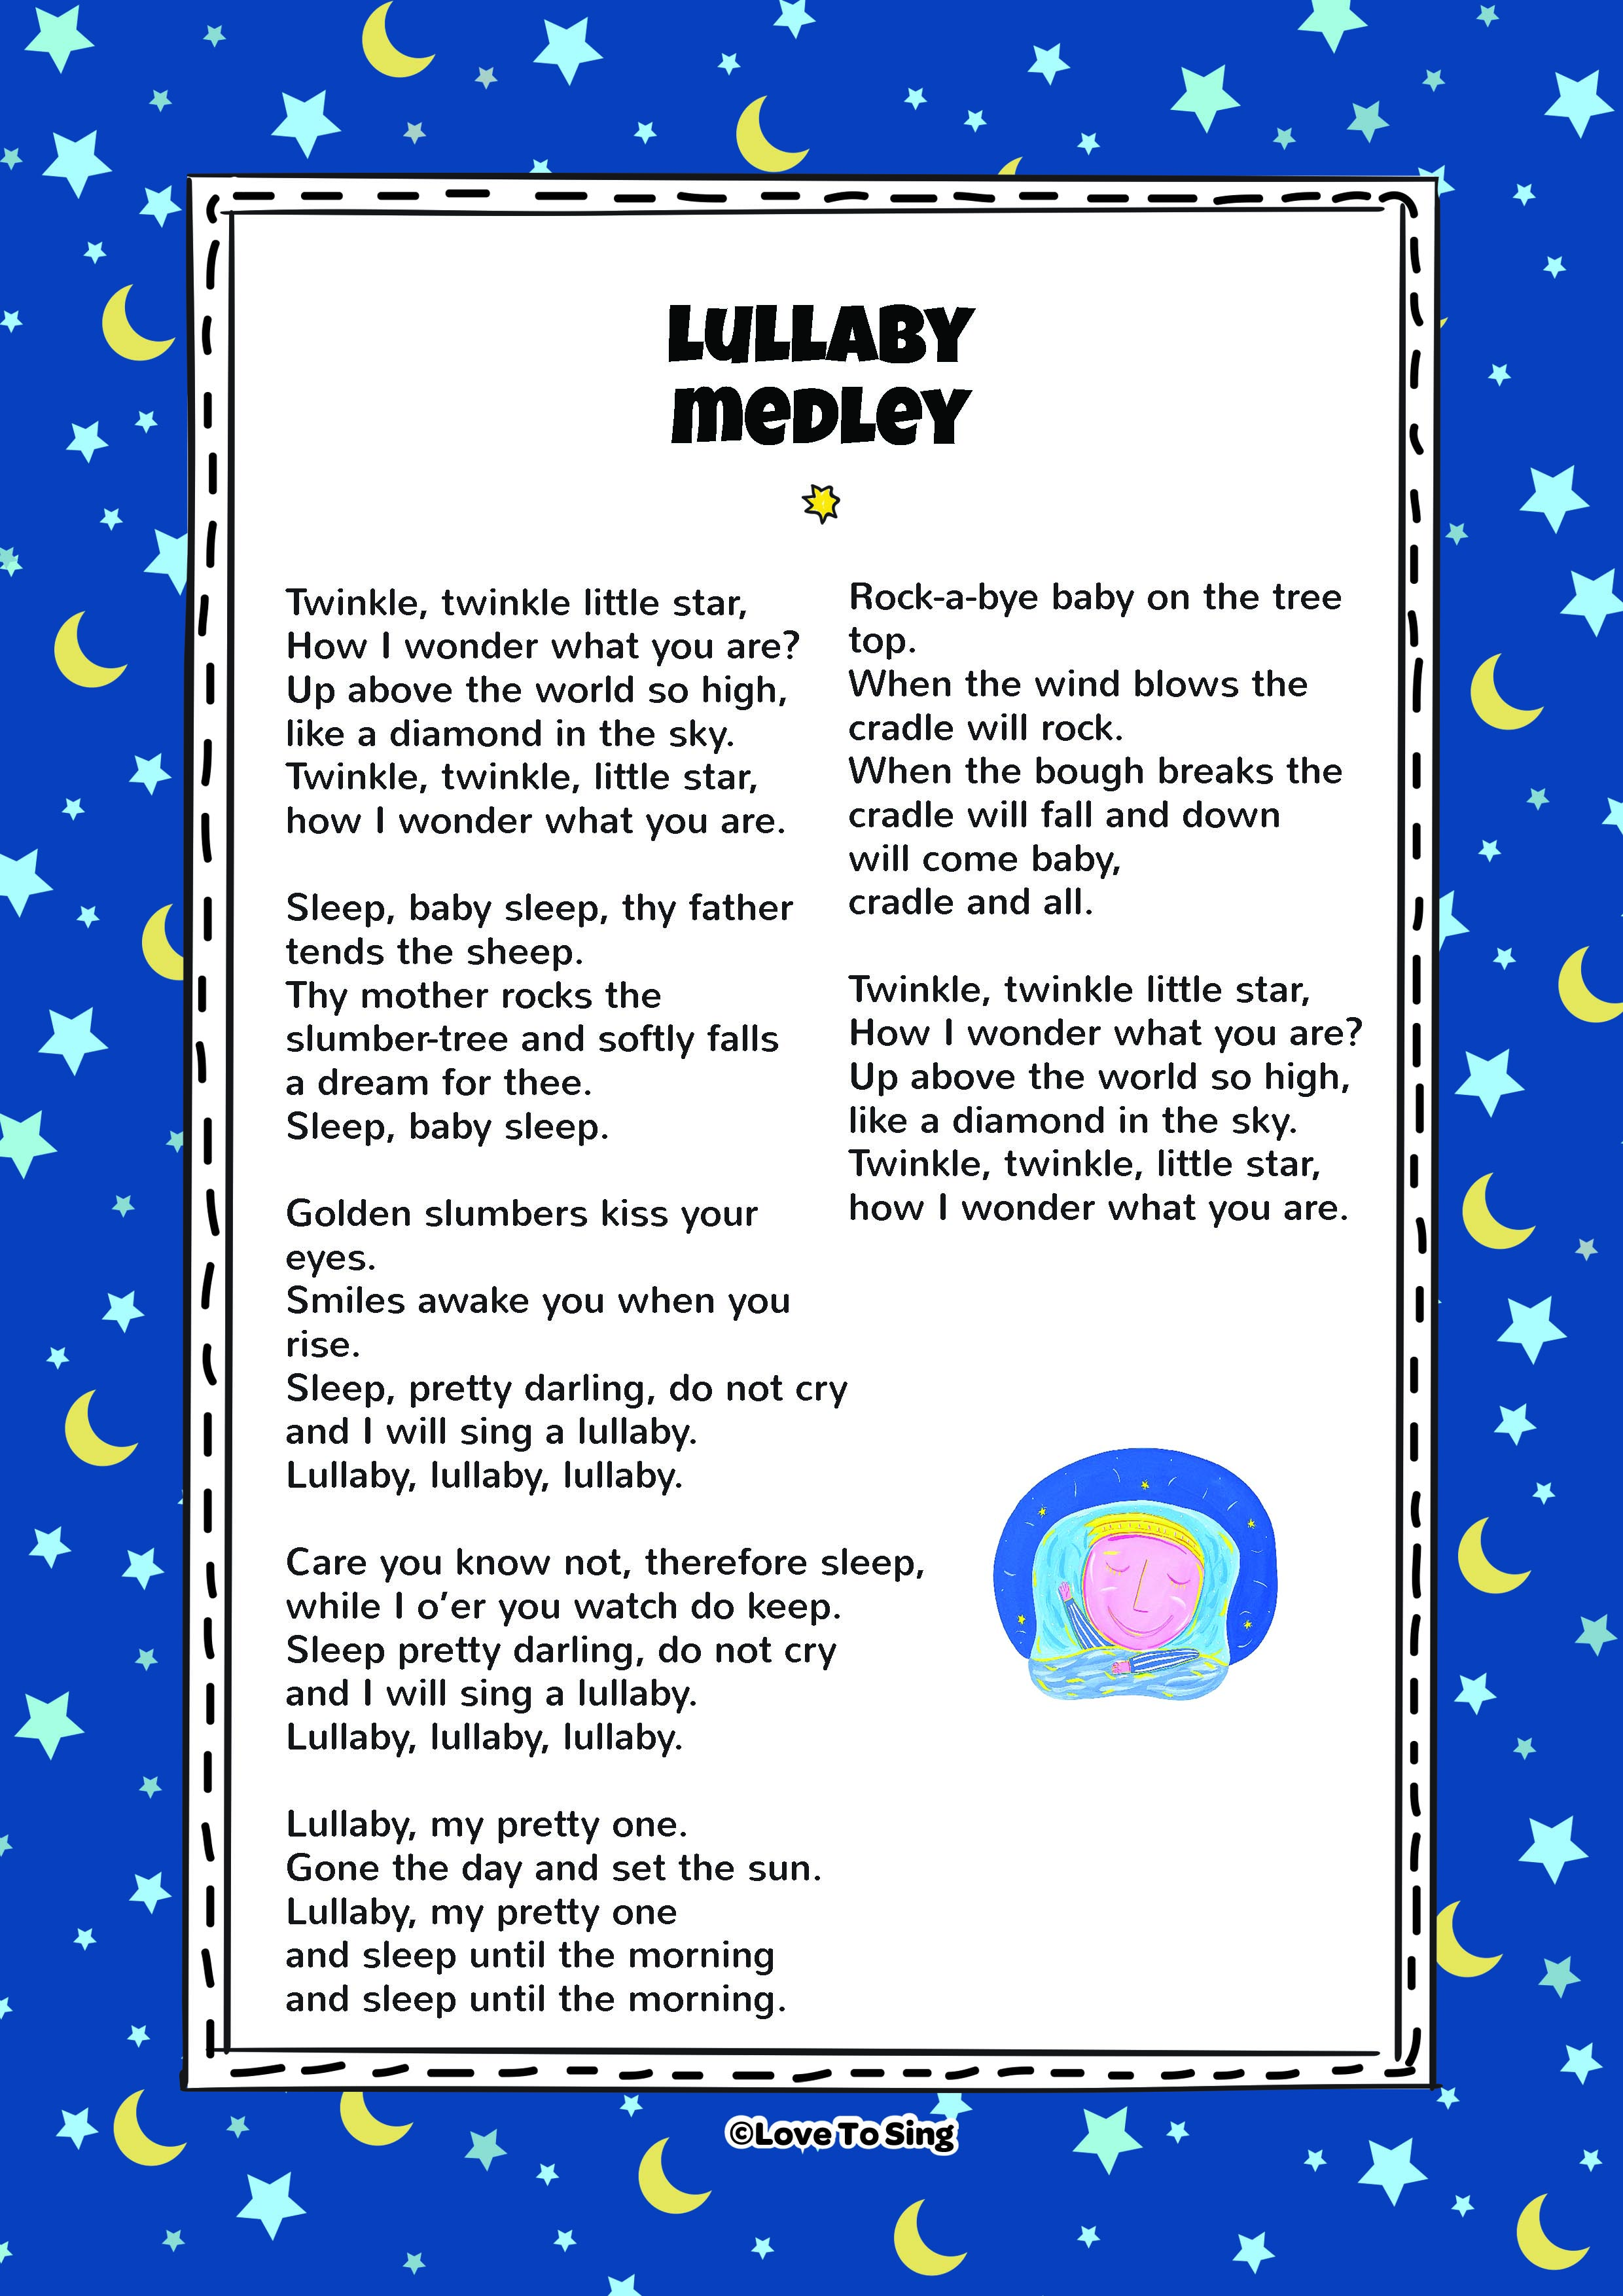 Lullaby Medley | Kids Video Song with FREE Lyrics ...